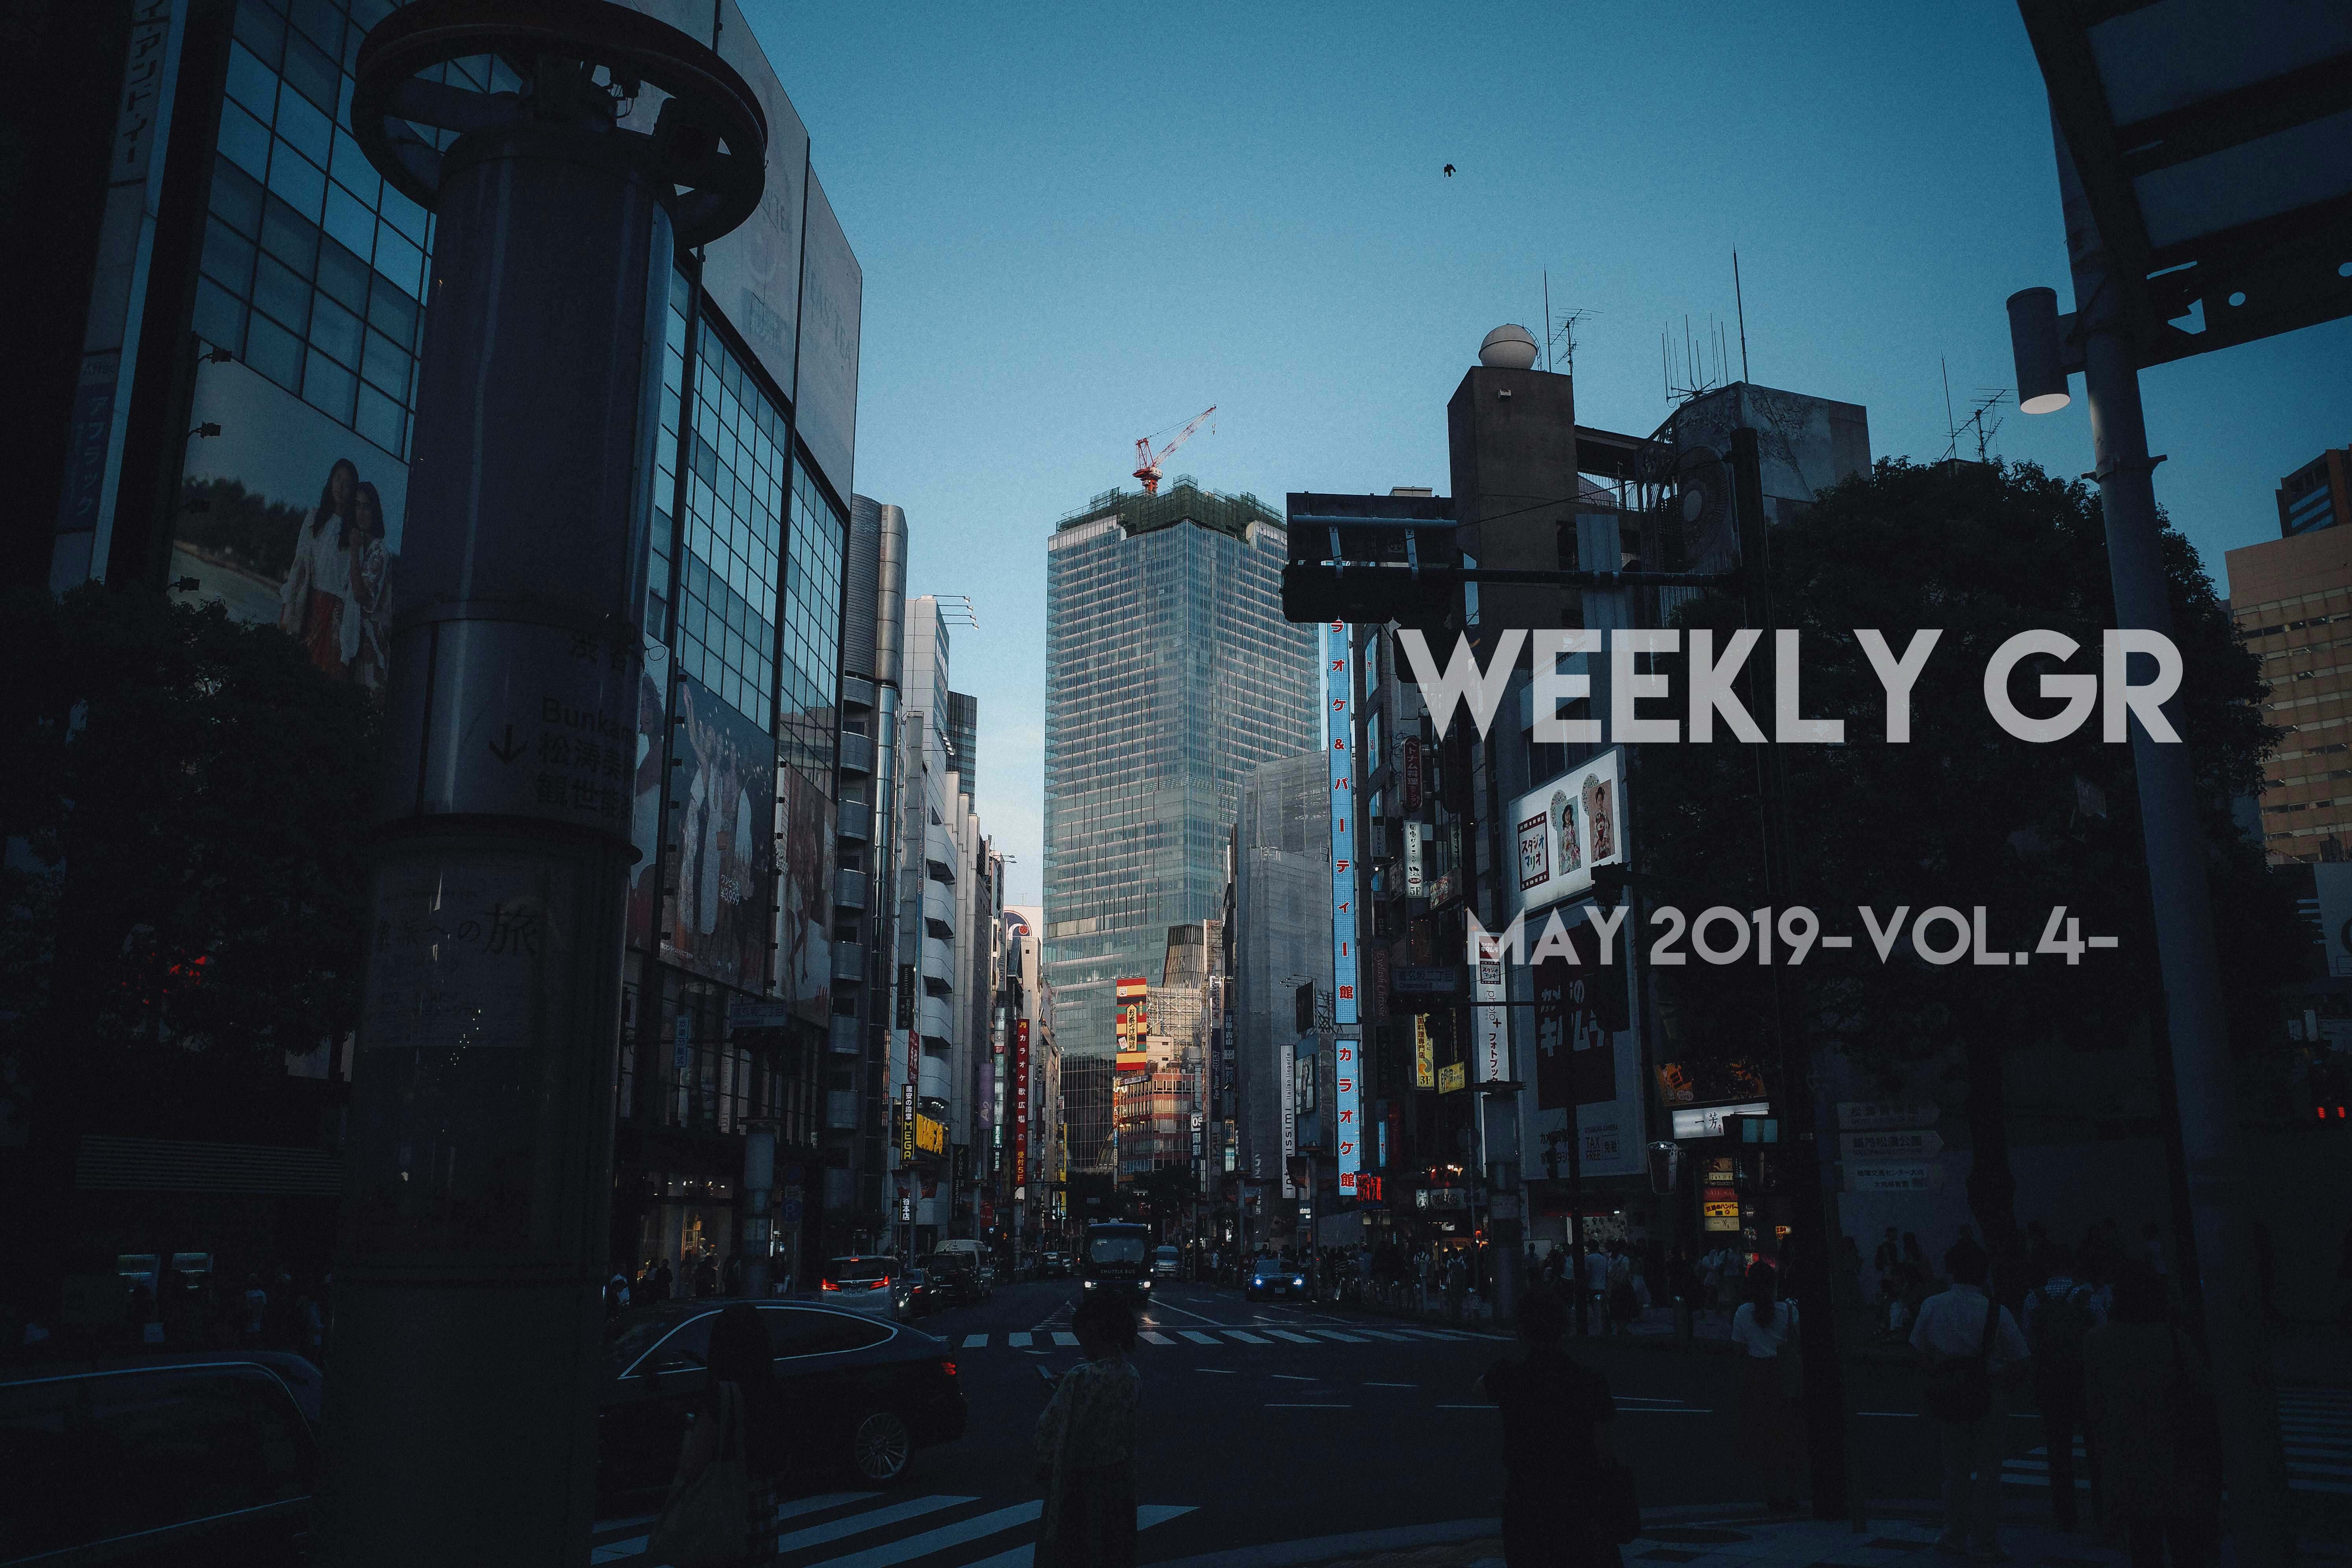 WEEKLY GR|May 2019-Vol.4-